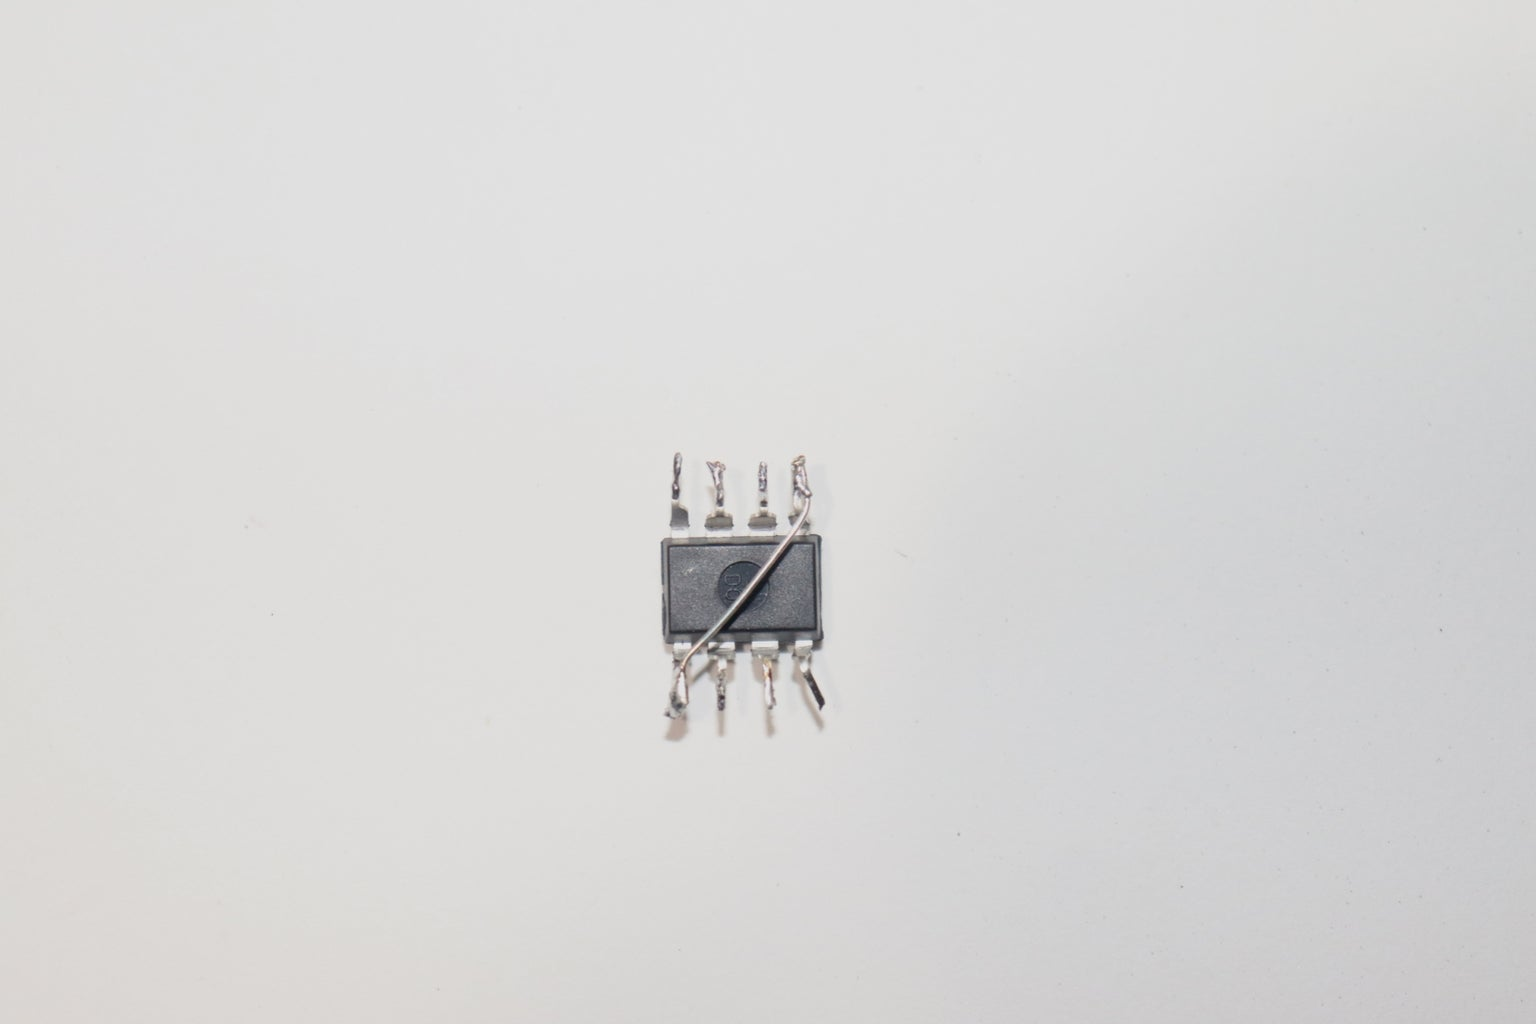 Connect Pin-4 and Pin-8 of LM555 IC